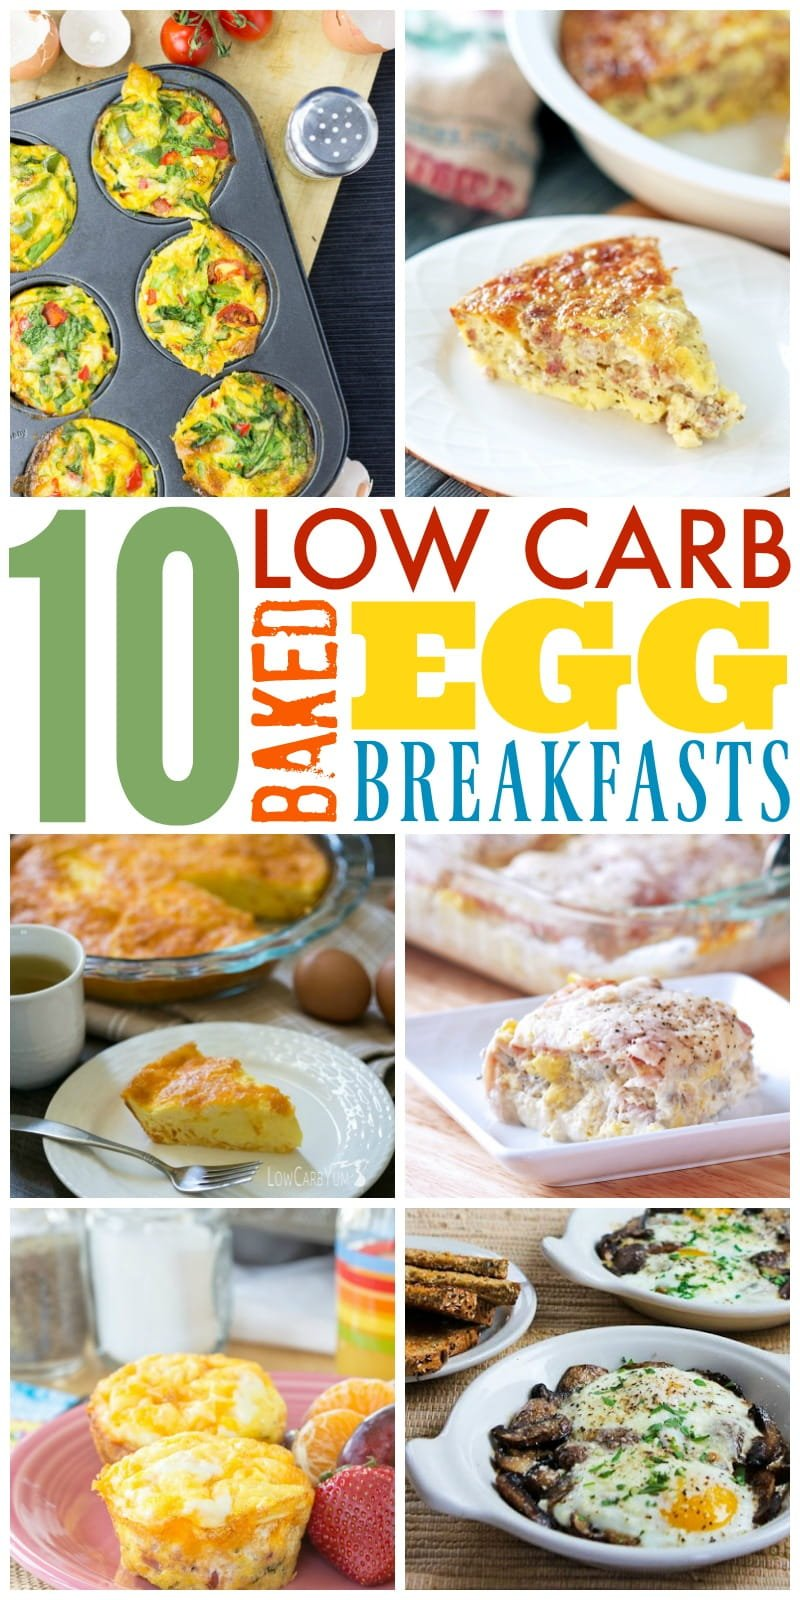 Baked Eggs 10 Low Carb Breakfast Ideas 730 Sage Street